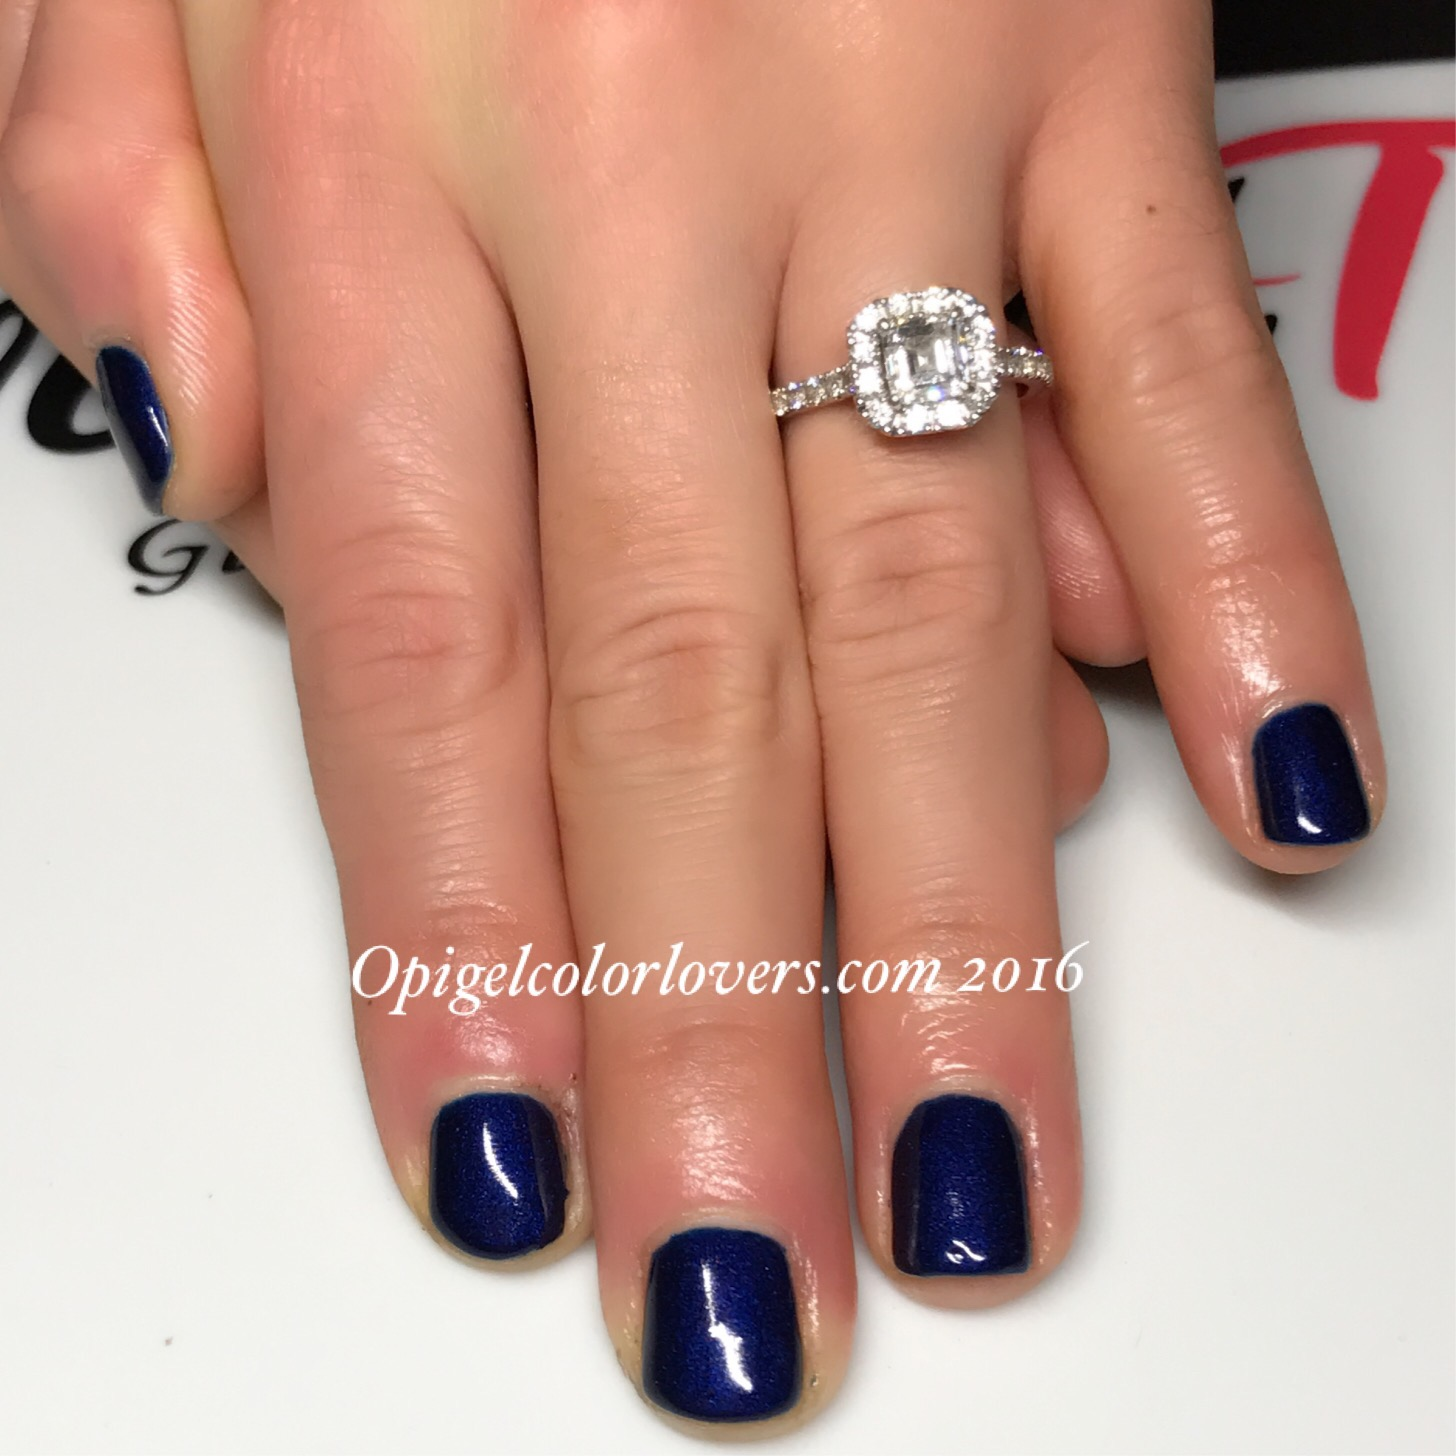 OPI GelColor Lovers Manicure Monday: Russian Navy